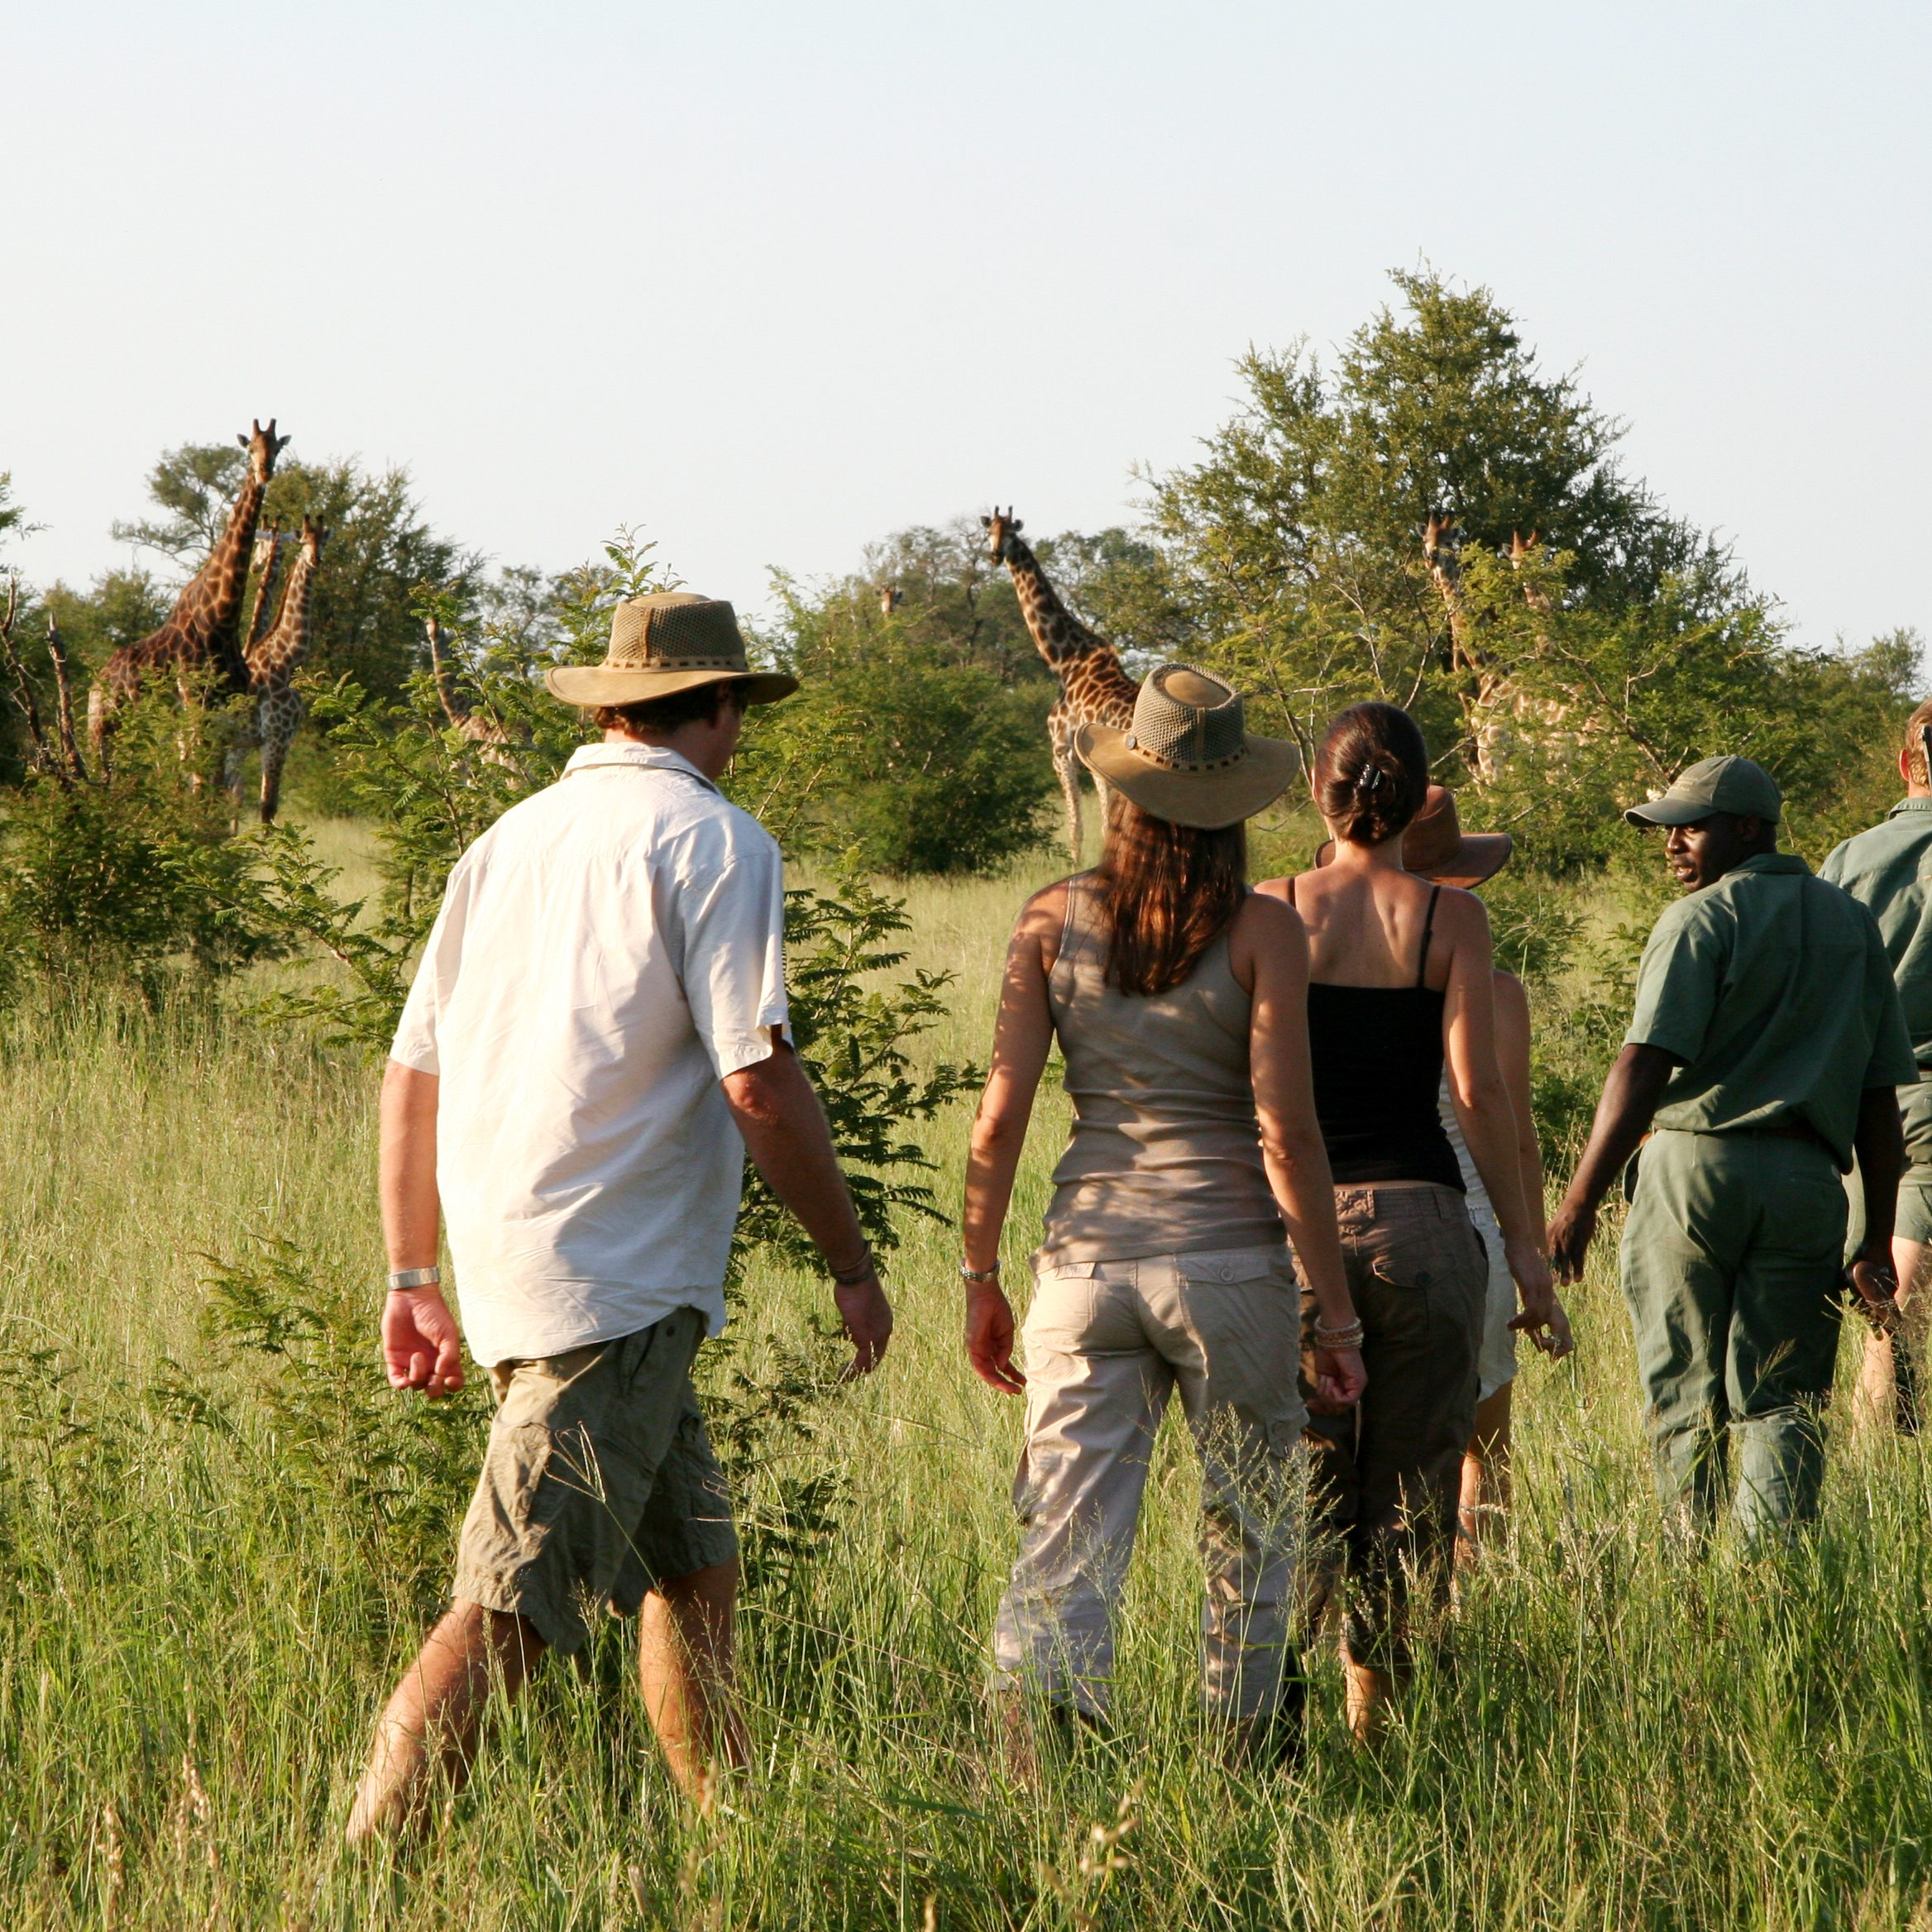 Rhino Walking Safari - photograph by Guy Upfold